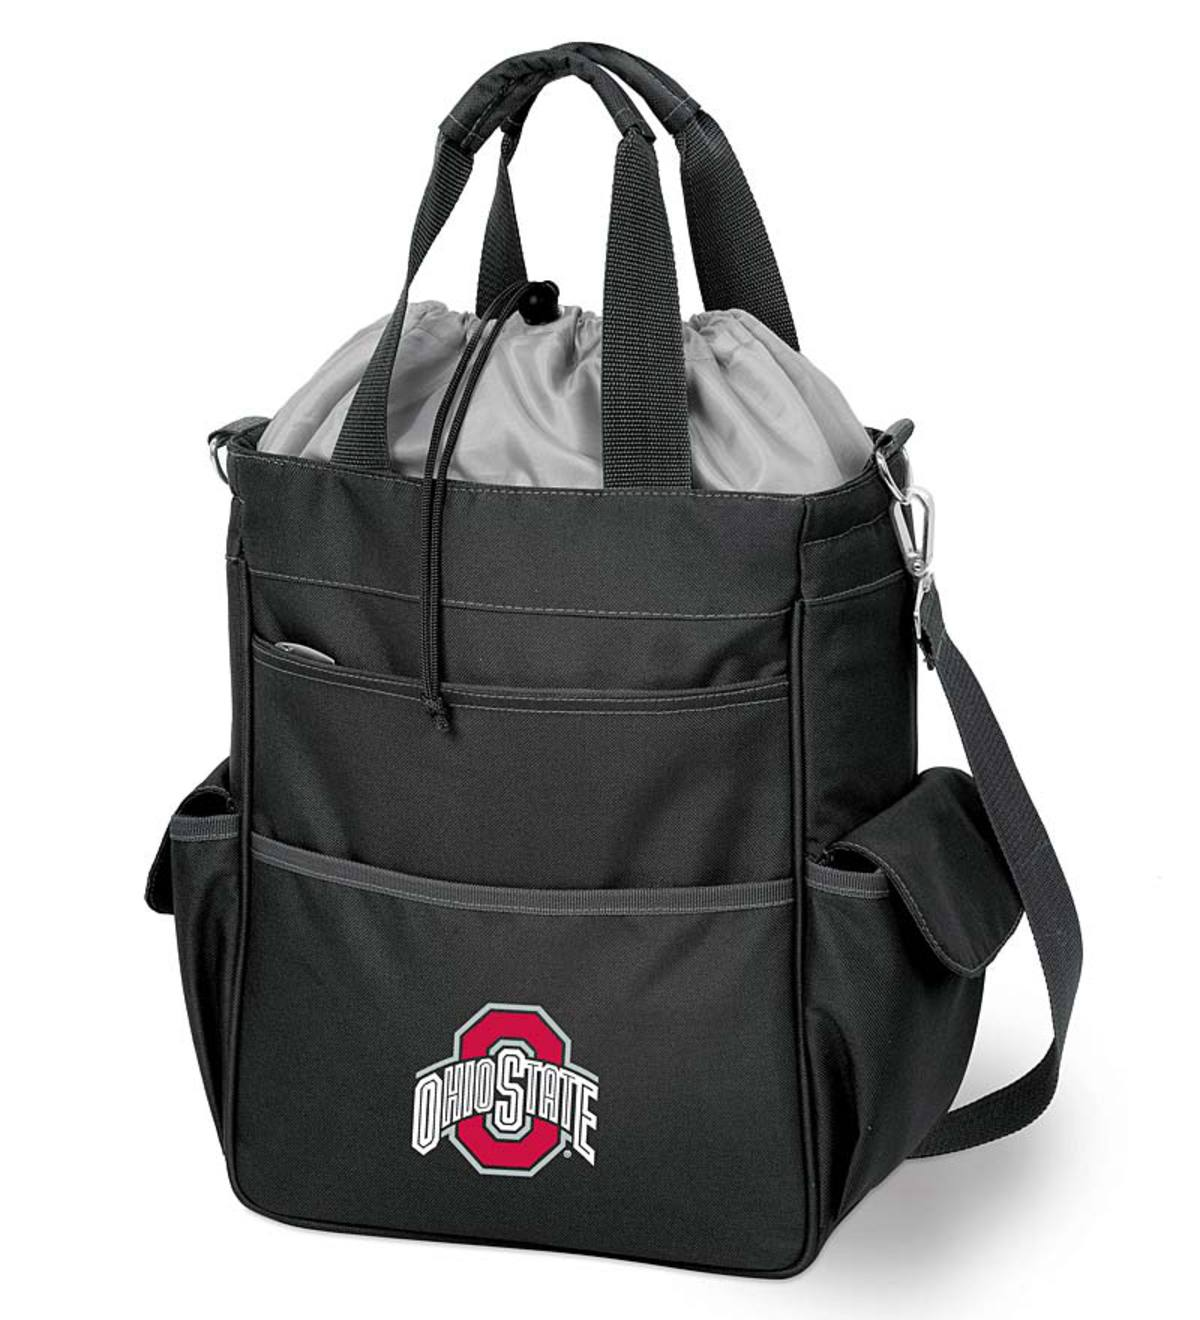 Collegiate Small Waterproof Tote